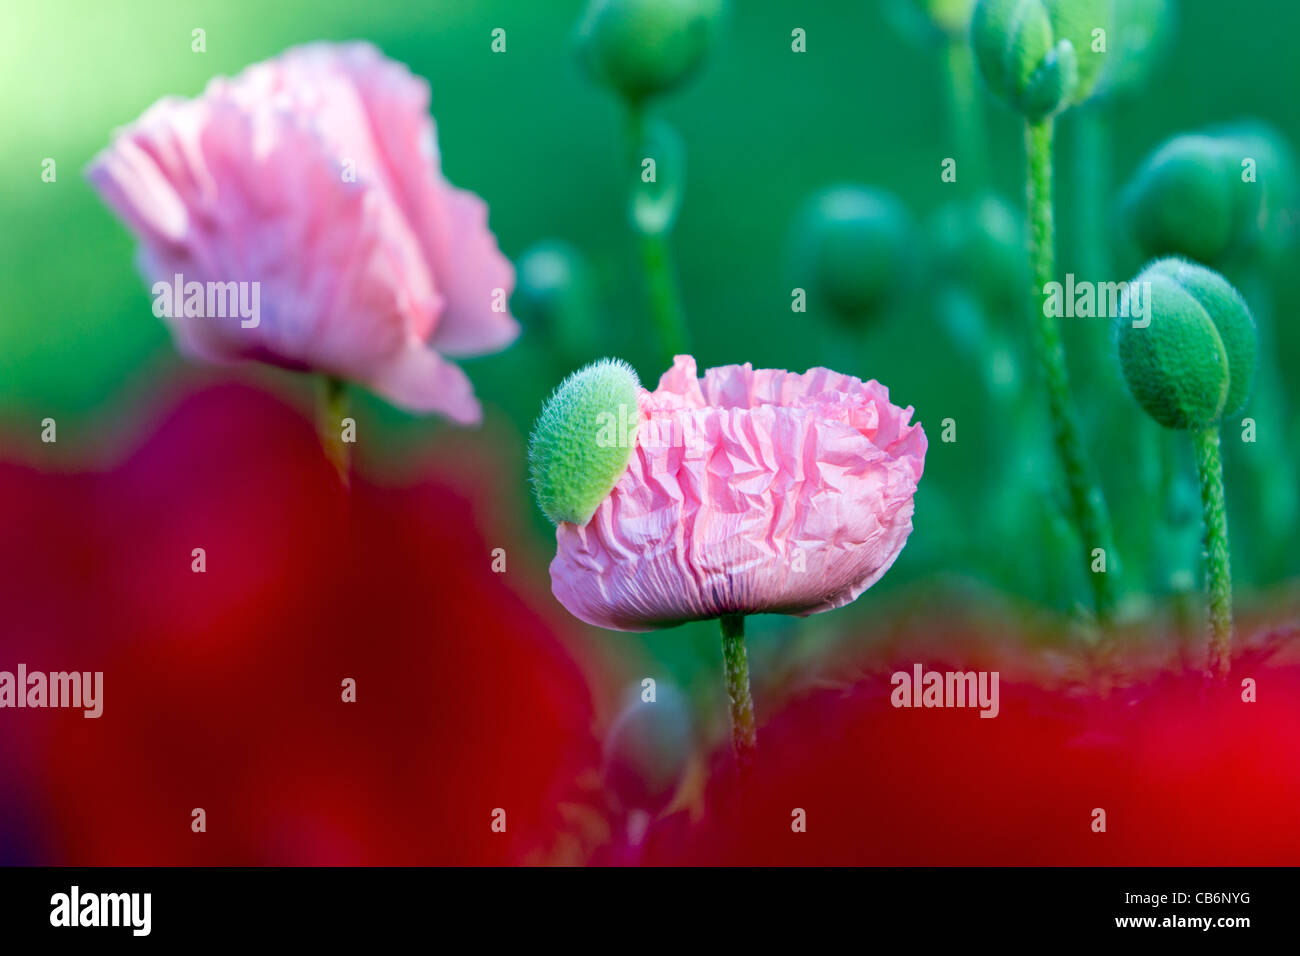 Pink Poppy (Papaver rhoeas cultivar), closed blossom head in garden, Lower Saxony, Germany - Stock Image